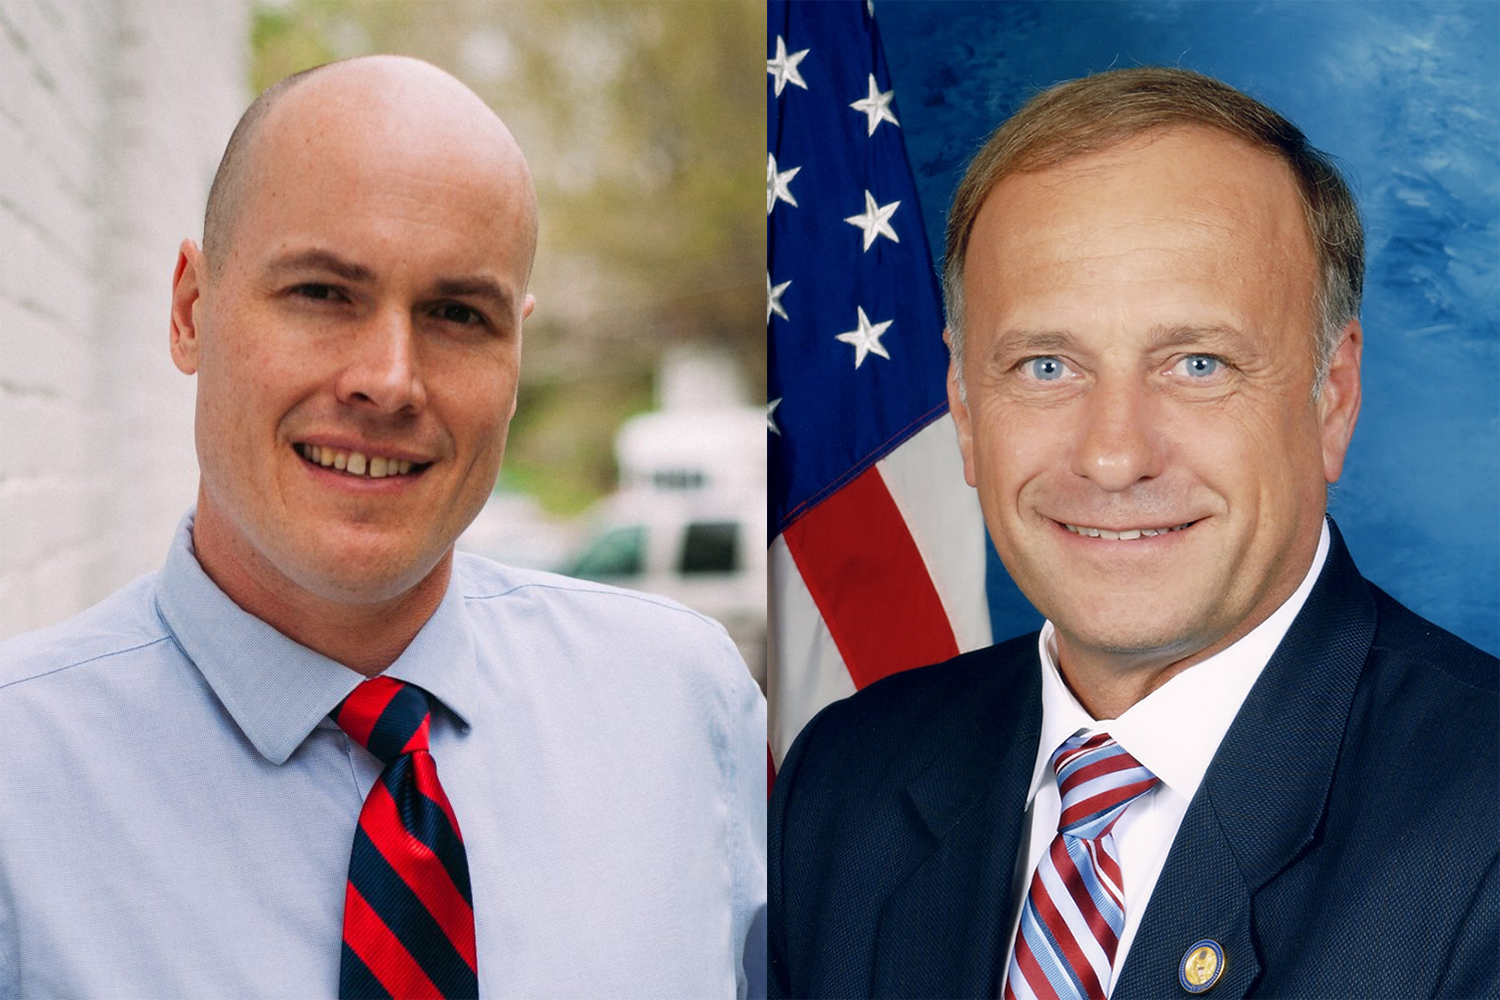 Democrat J.D. Scholten  (left) is running against Republican incumbent Steve King to take a seat in the U.S. House of Representatives.